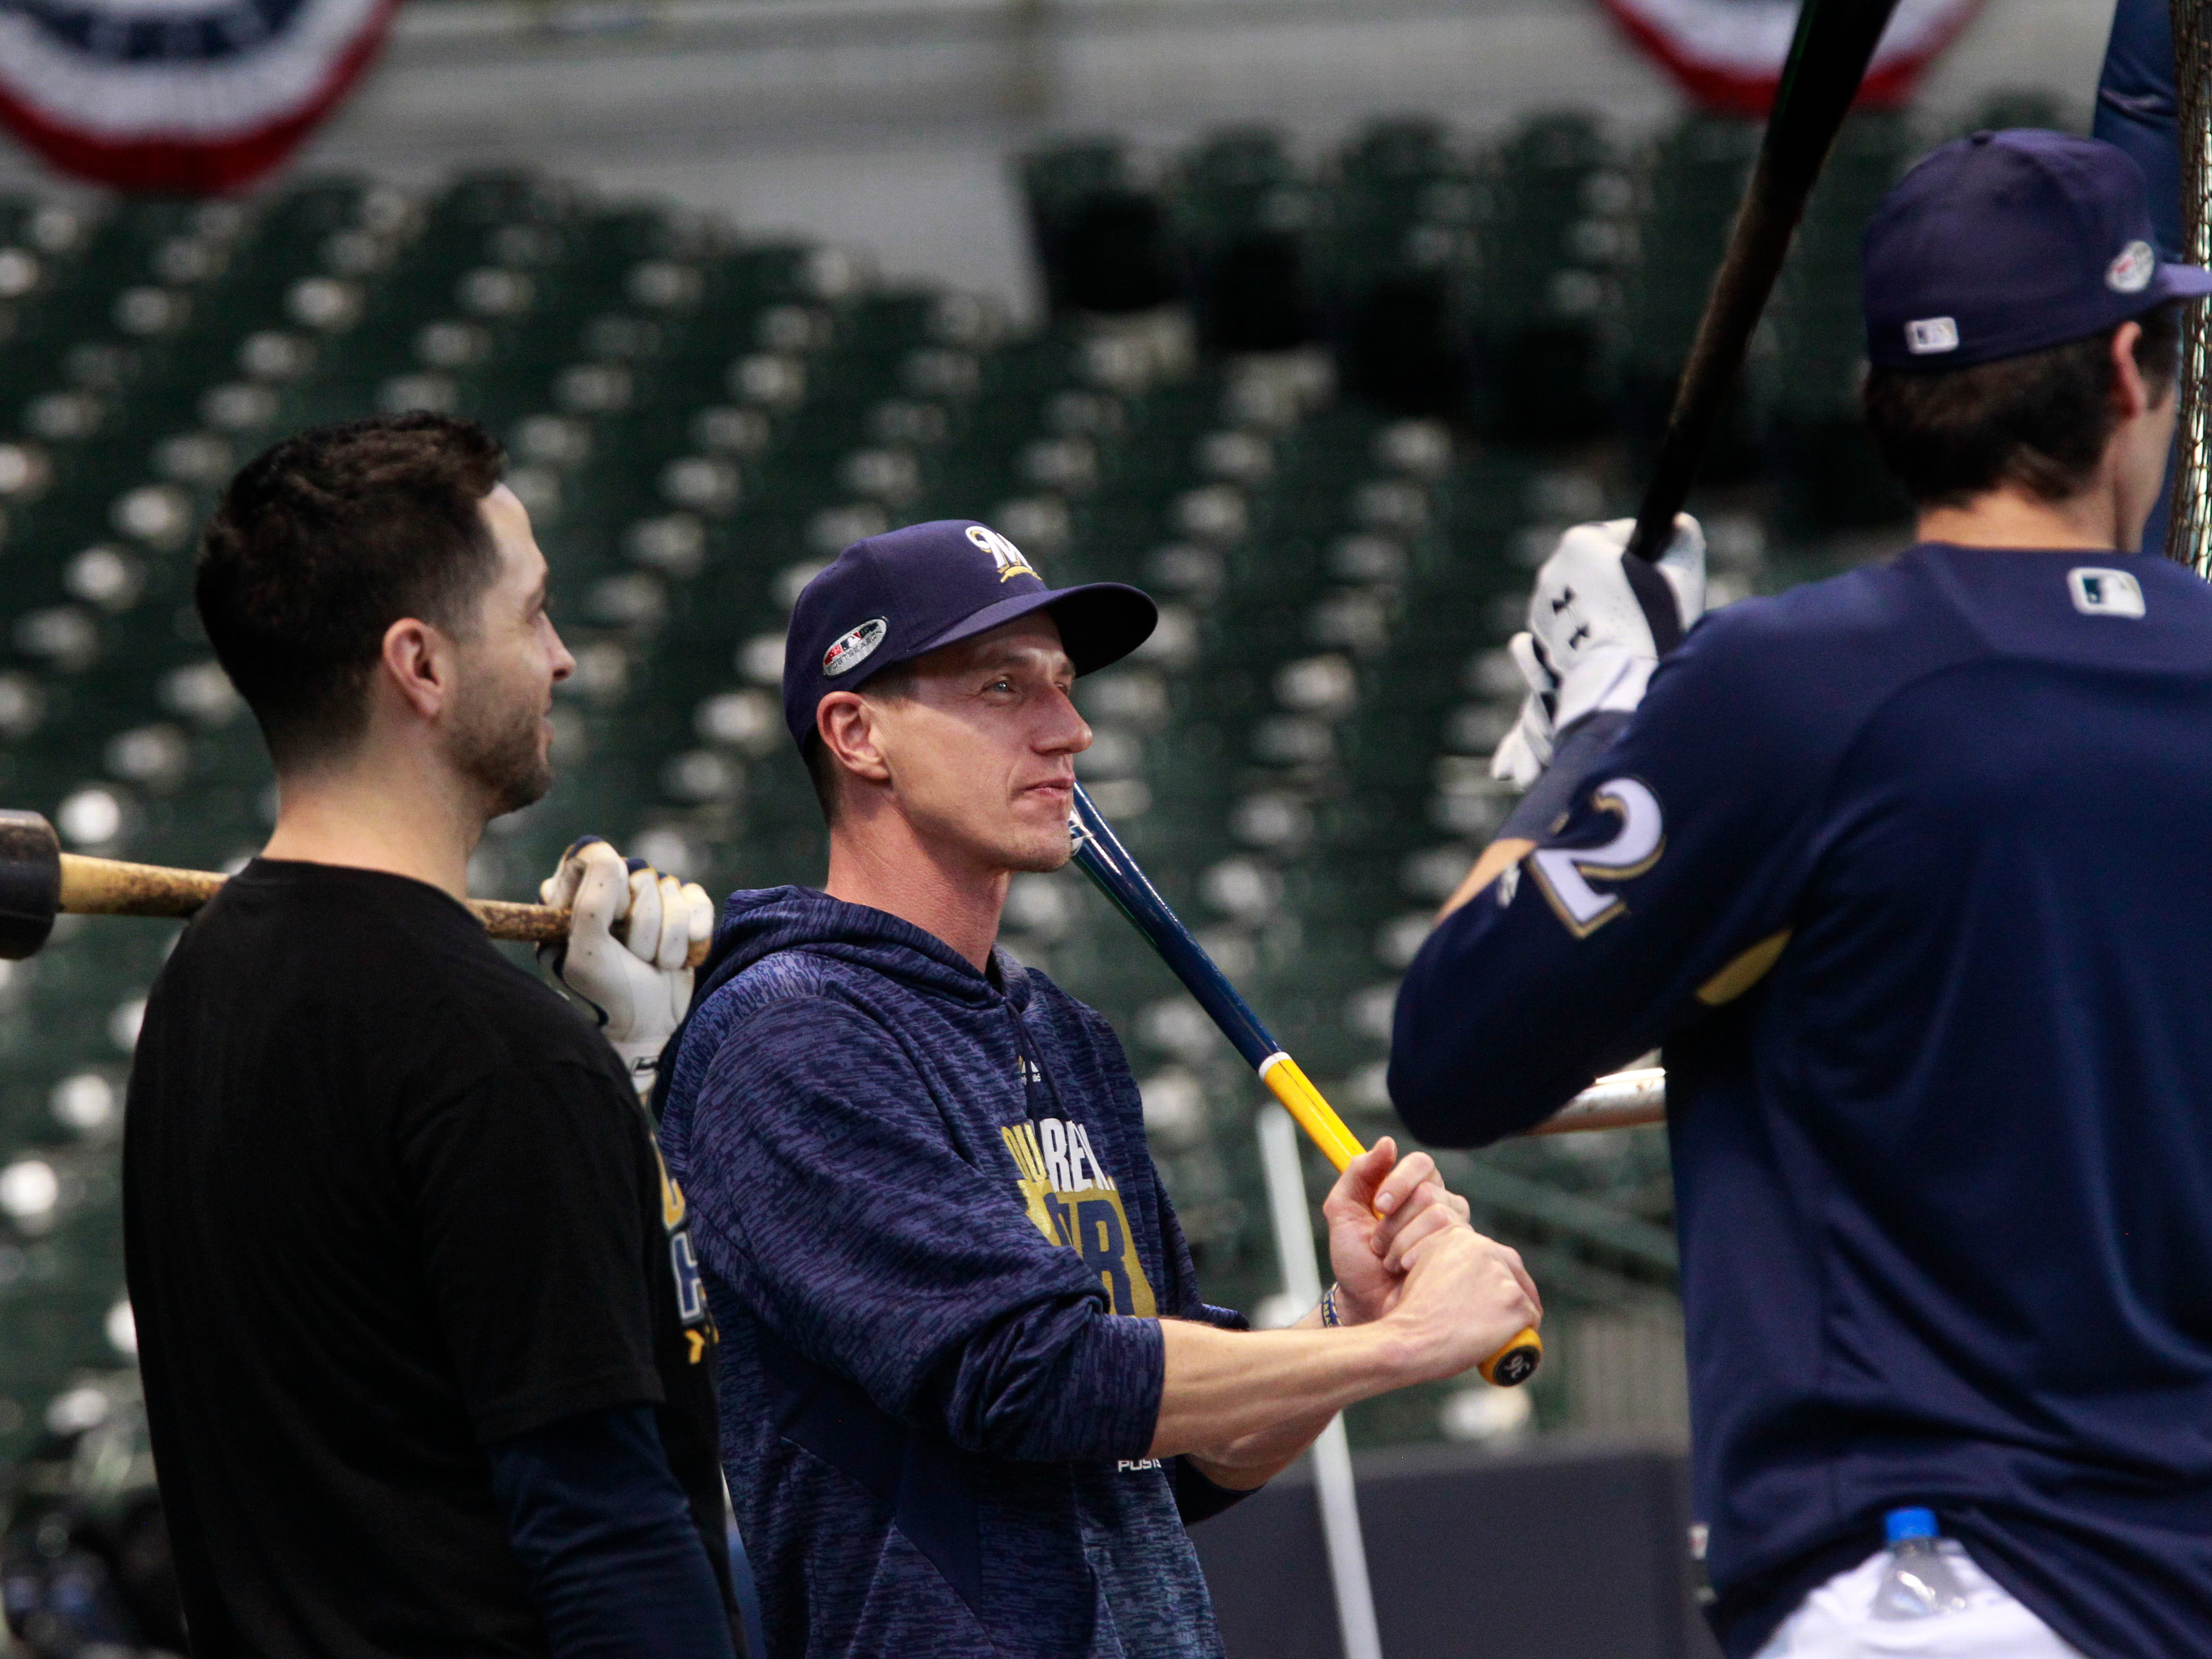 Ryan Braun talks with manager Craig Counsell during batting practice on Wednesday at Miller Park.